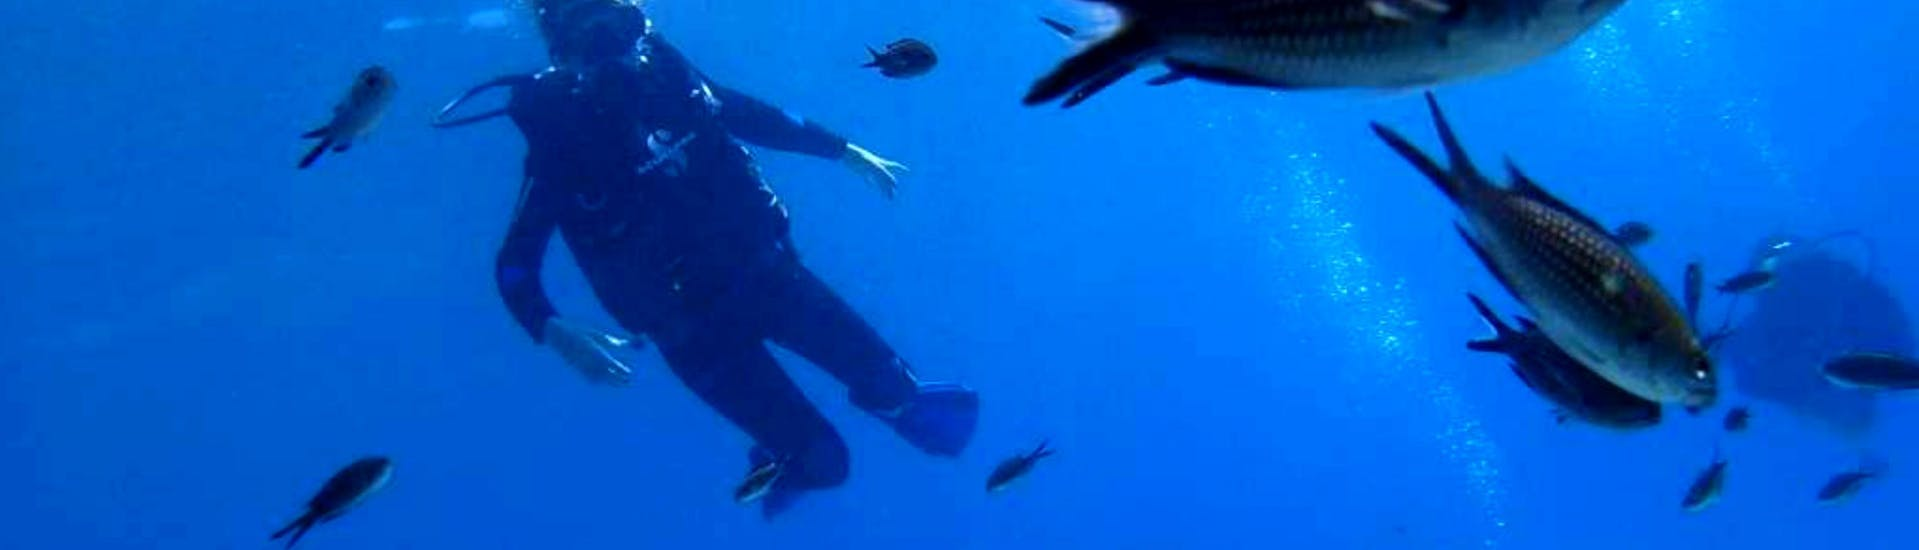 A woman exploring the fascinating underwater life of the Cretan Sea on her Scuba Diving Course for Beginners - PADI Scuba Diver together with an experienced instructor from Evelin Dive Center.